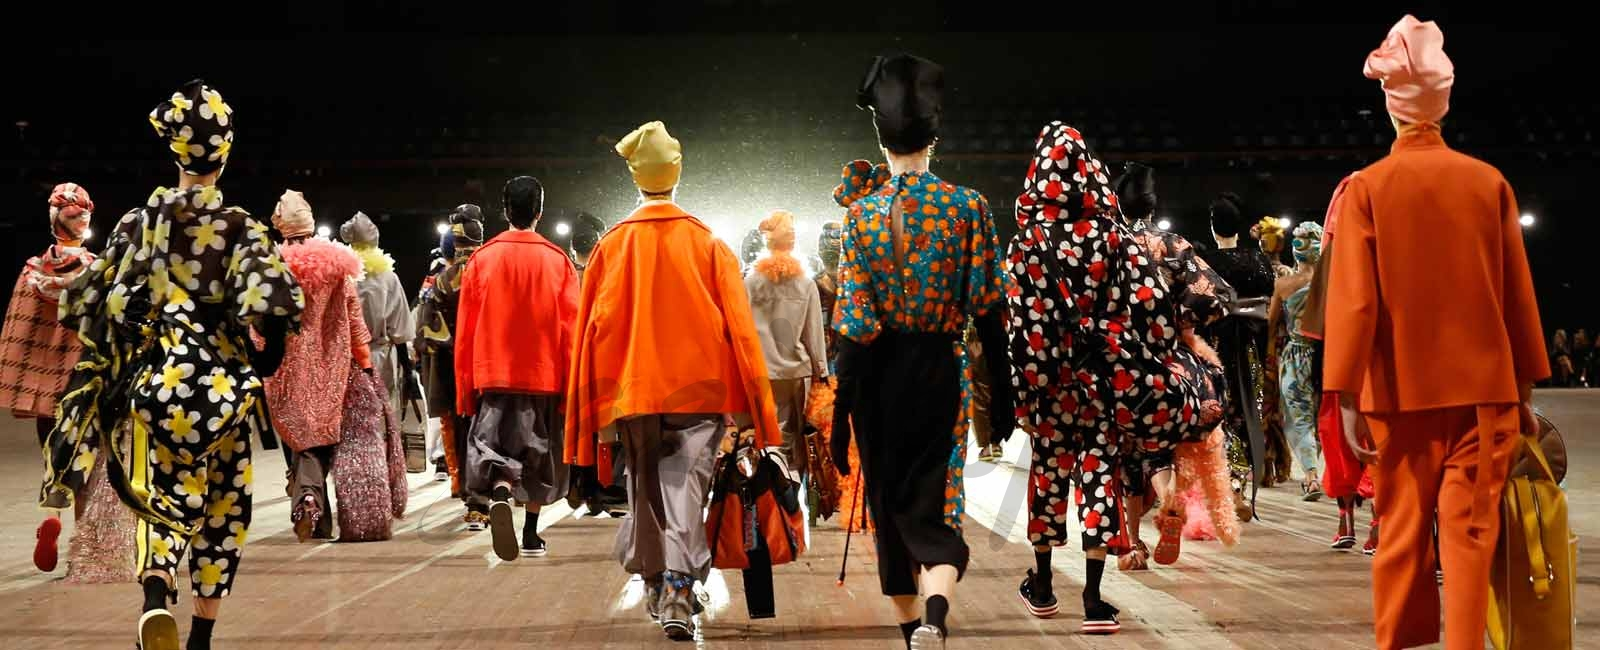 New York Fashion Week Primavera-Verano 2018: Marc Jacobs